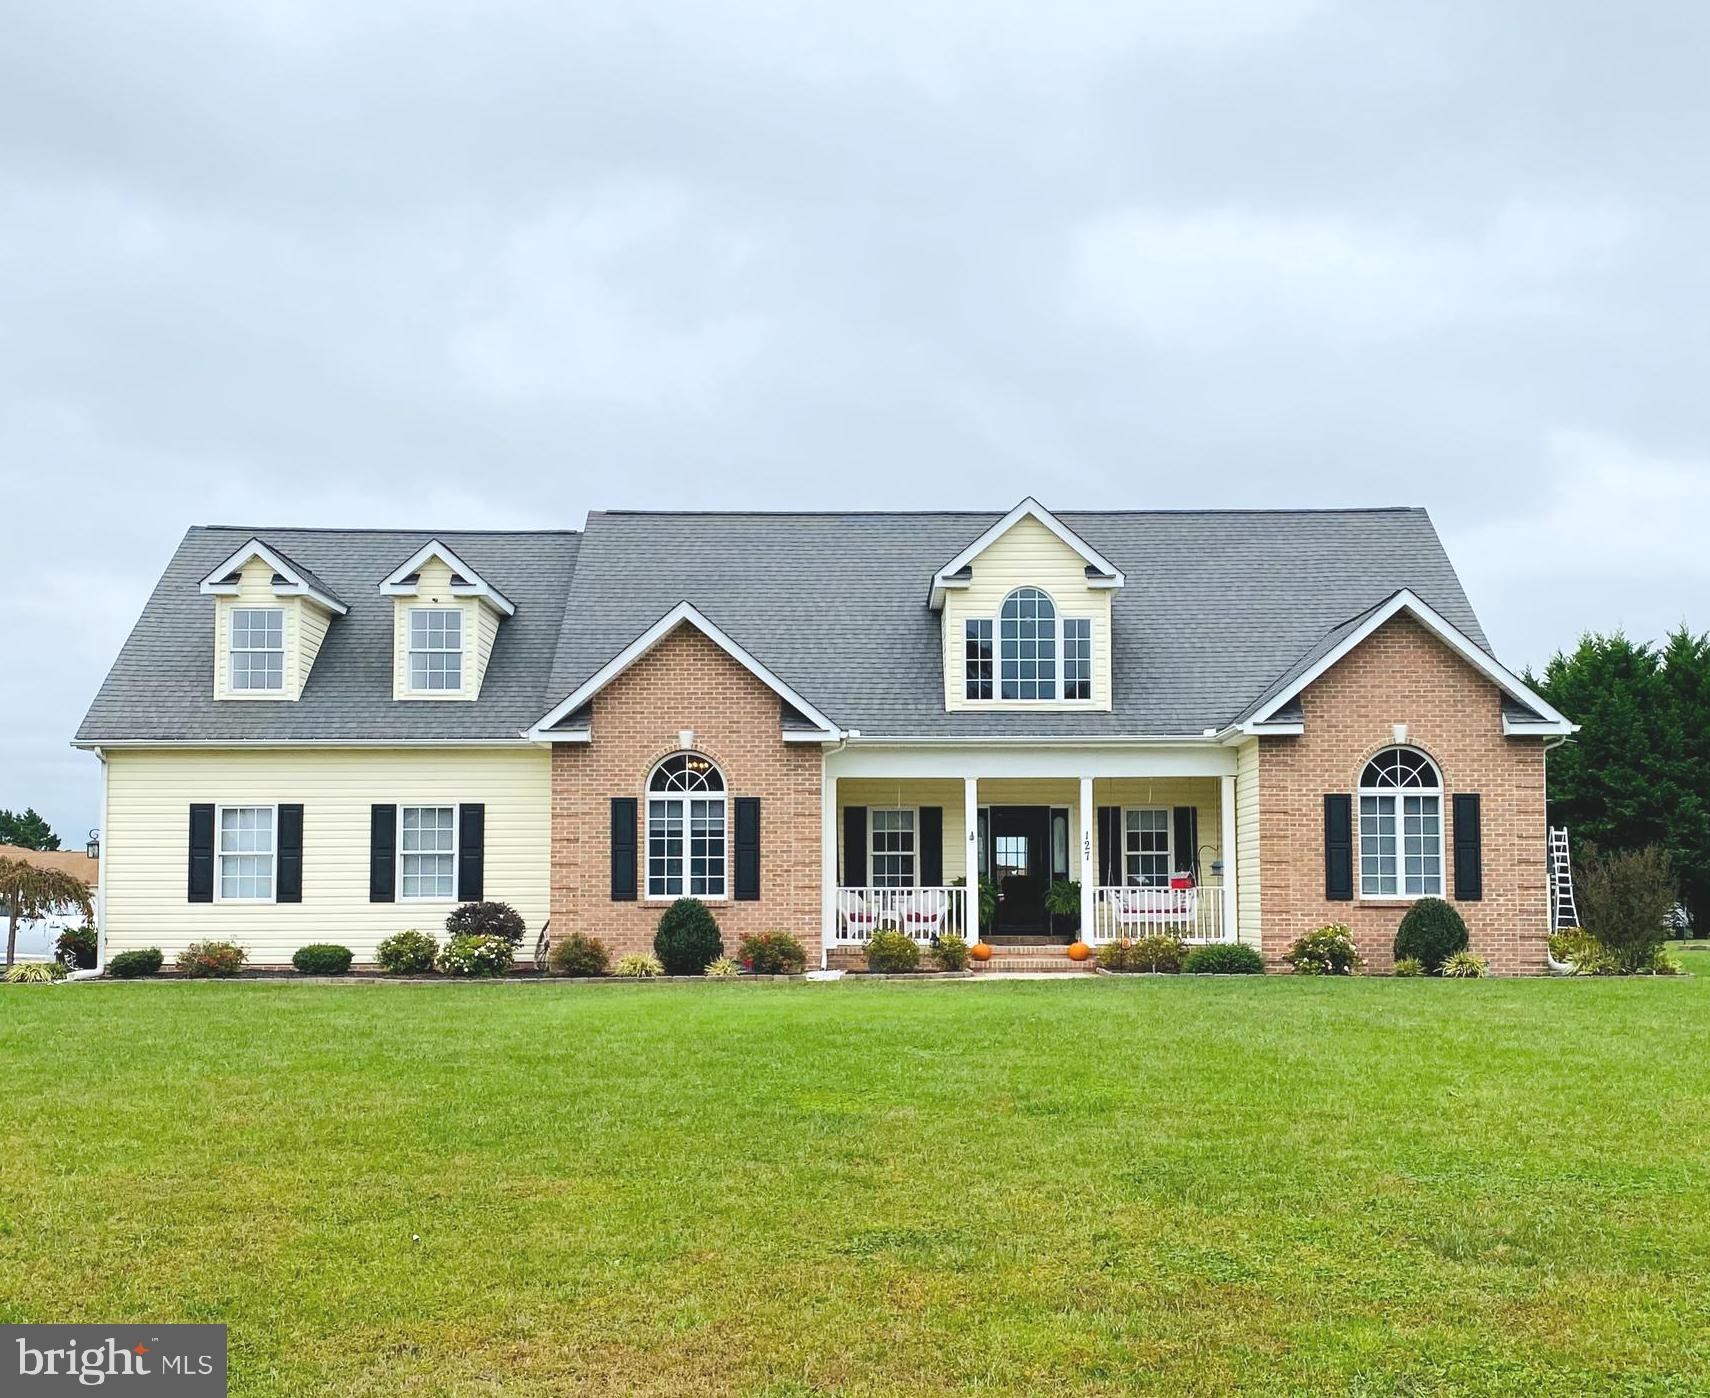 Wow!!!  What a great home in Lucky Estates off Rt. 14 east of Harrington.  4 bedrooms, 2 full bath, oversized 2 car garage with epoxy floor, on demand water heater, heat pump with propane back-up, .57 acres, screened porch, 14 x16 deck, propane fireplace in Great Room, beautiful owner's bedroom and bath with jetted soaking tub and separate shower, dining room with Cathedral ceiling, split floor plan, laundry room with pantry shelving and a storage shed.  The 4th bedroom is on the 2nd level accessed by a stairway off of the kitchen.  This room encompasses the entire 2nd floor being approximately 69 x 26 with 3 closets (one closet can access plumbing to have its own bath) and 3 dormers.  This home also offers a irrigation system, NO HOA,  a 12 x 6 walk-in closet in the owners suite, tray ceiling, numerous ceiling fans throughout the home and has been lovingly cared for.  Don't wait.  This home will not last long!!!